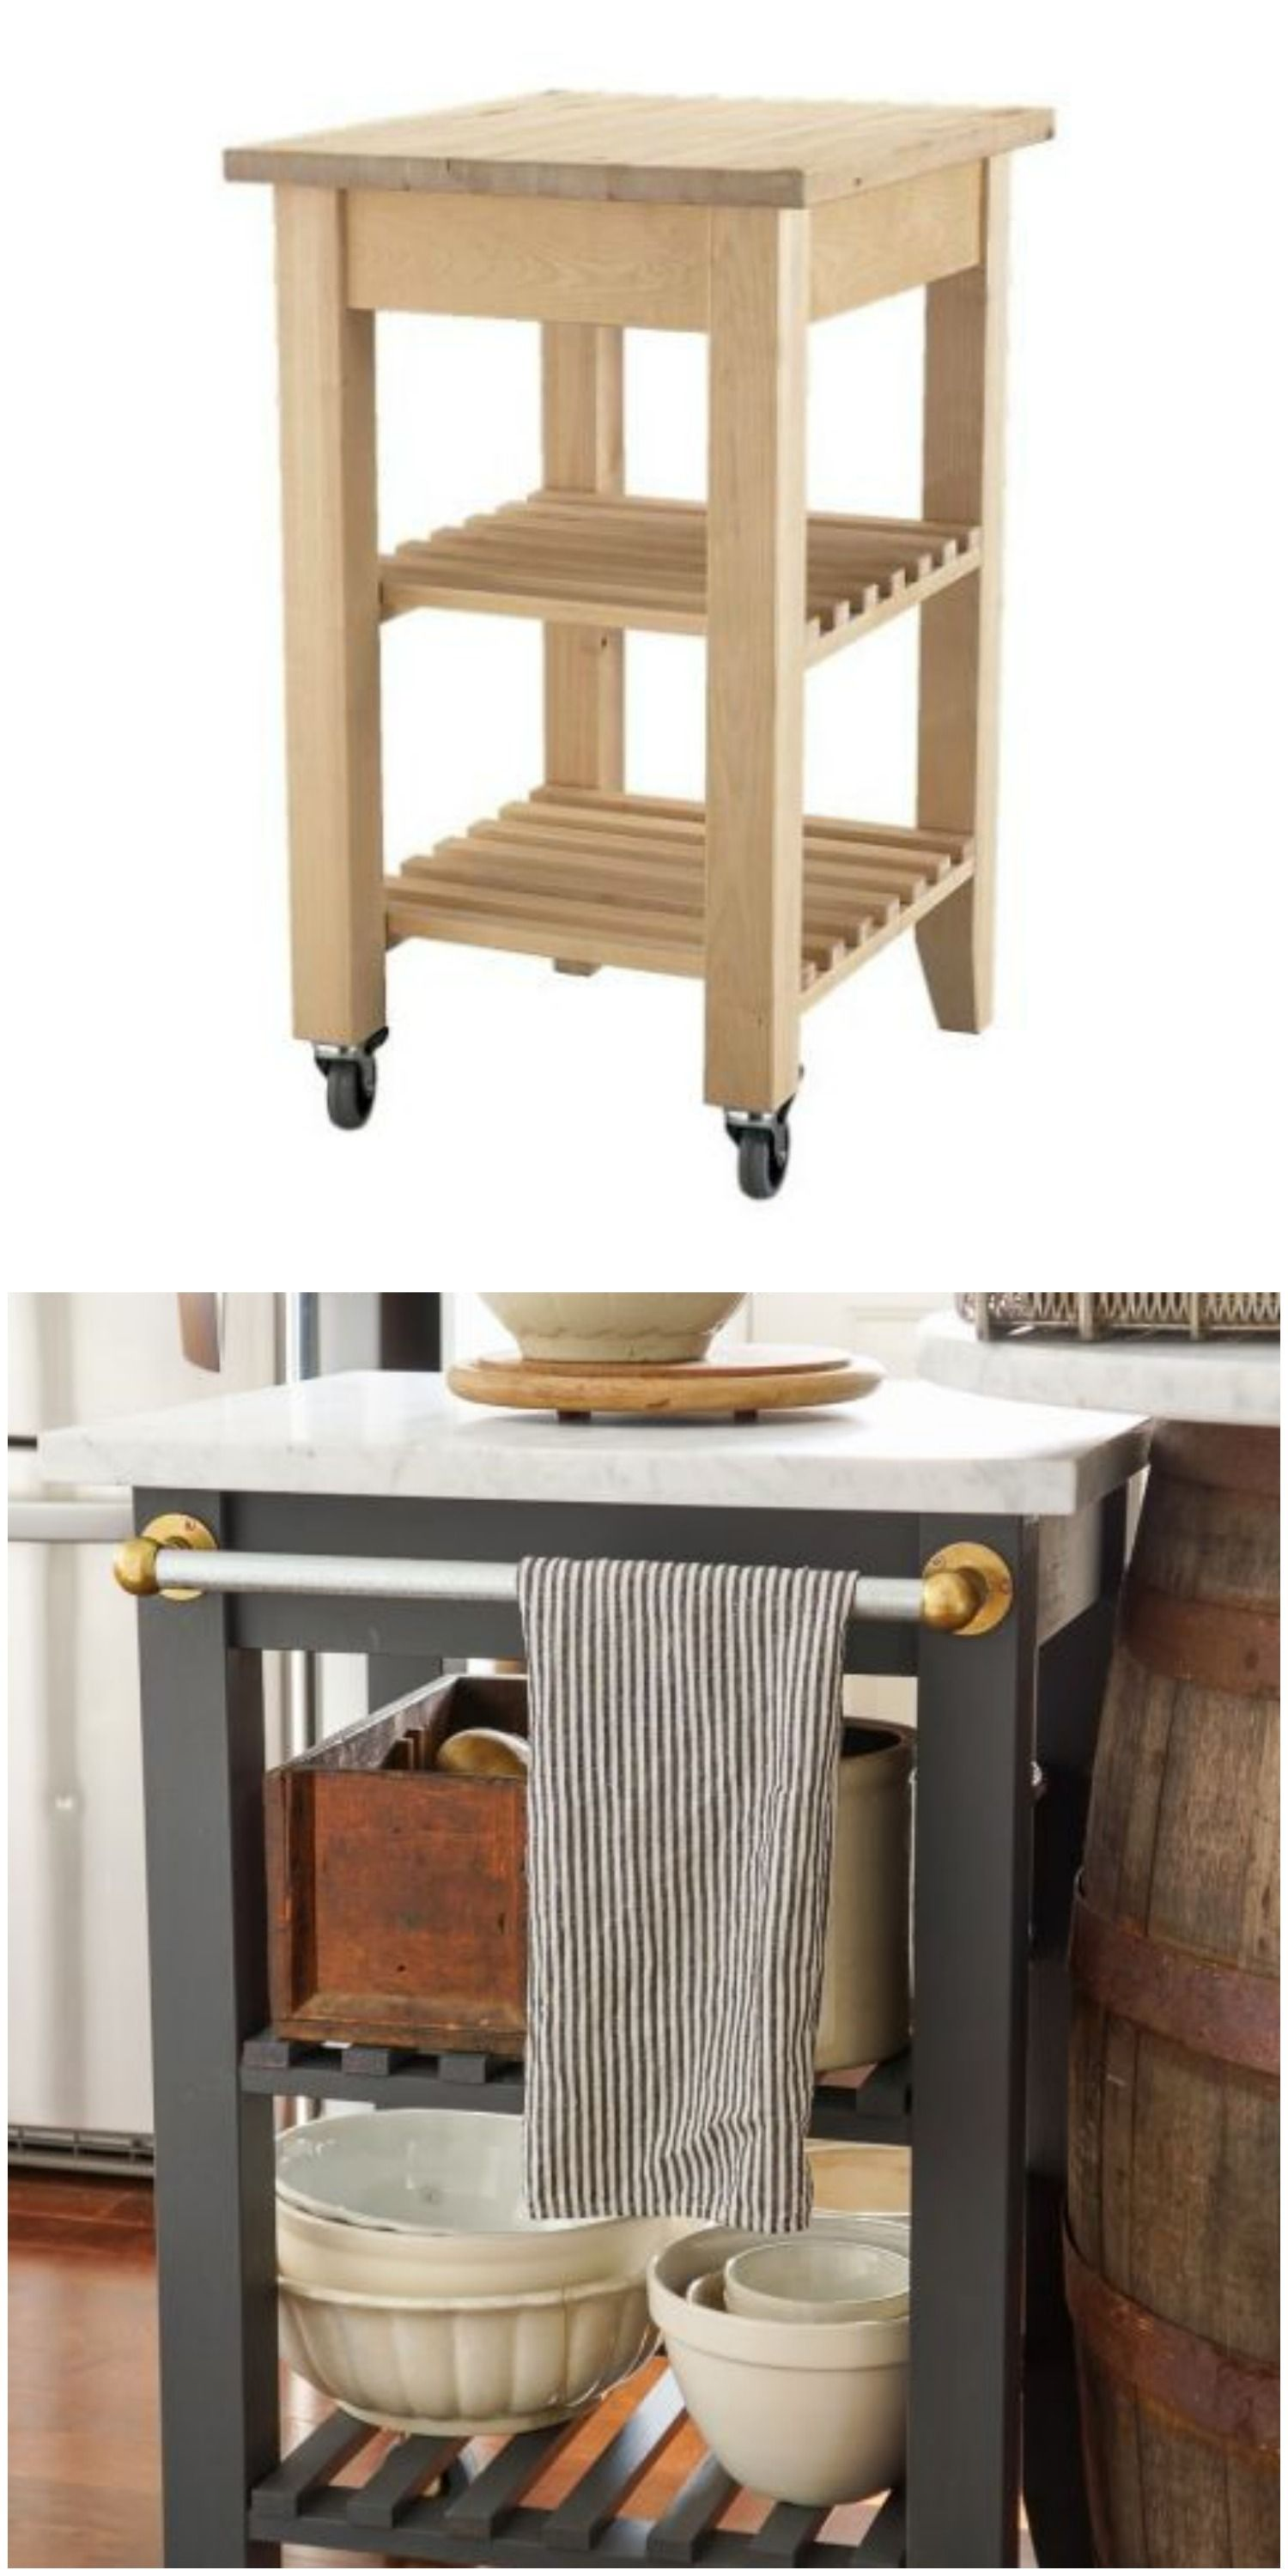 outdoor kitchen storage cart floral curtains the 25 coolest ikea hacks we 39ve ever seen portable